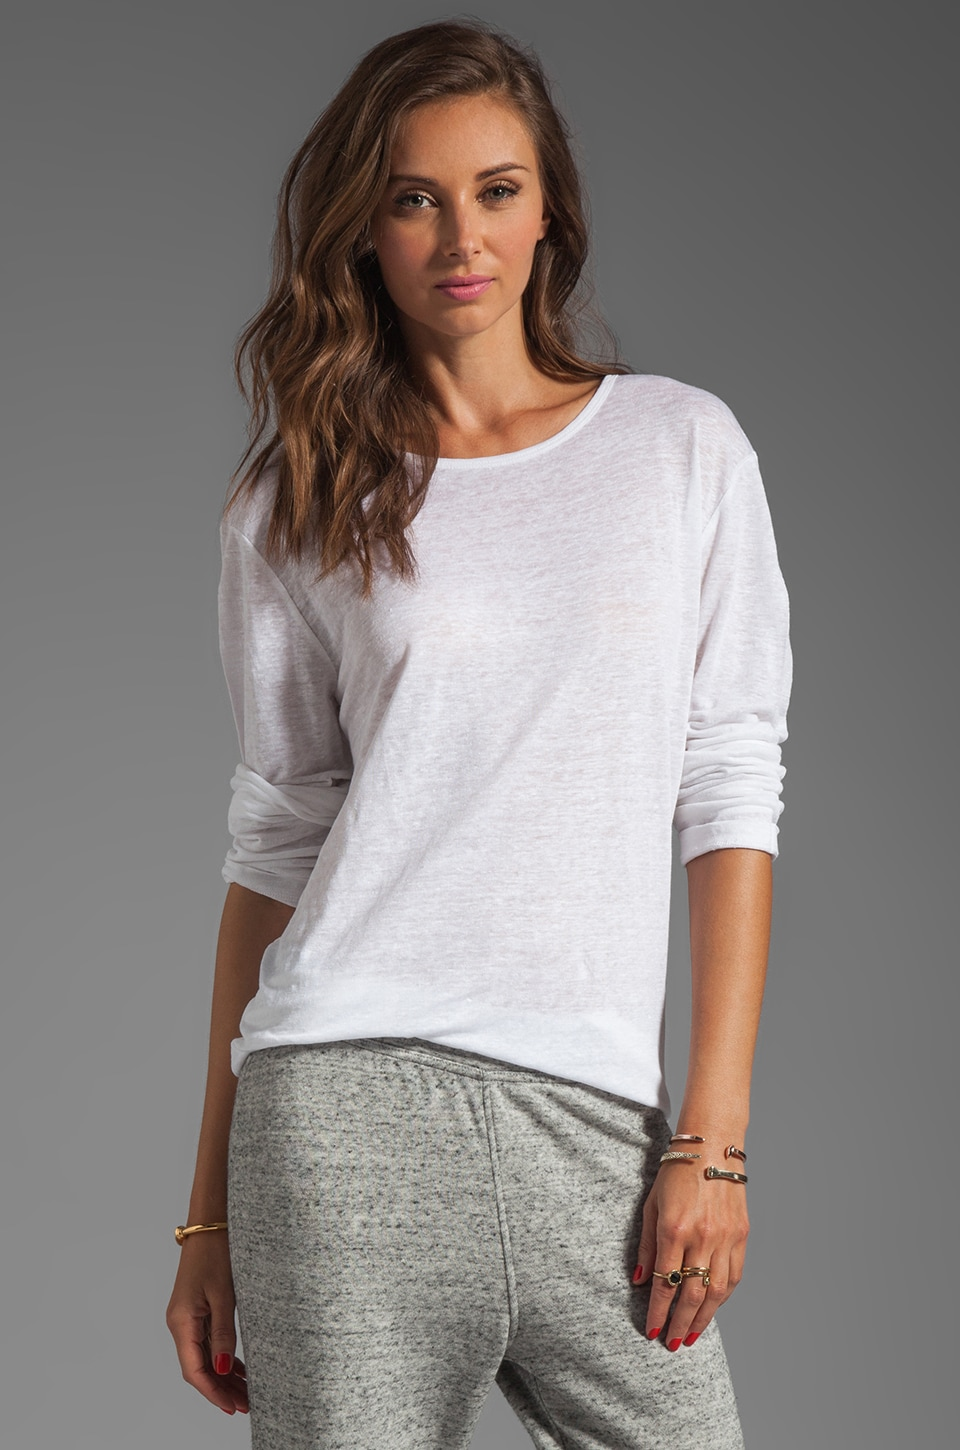 T by Alexander Wang Linen Silk Long Sleeve Tee in White